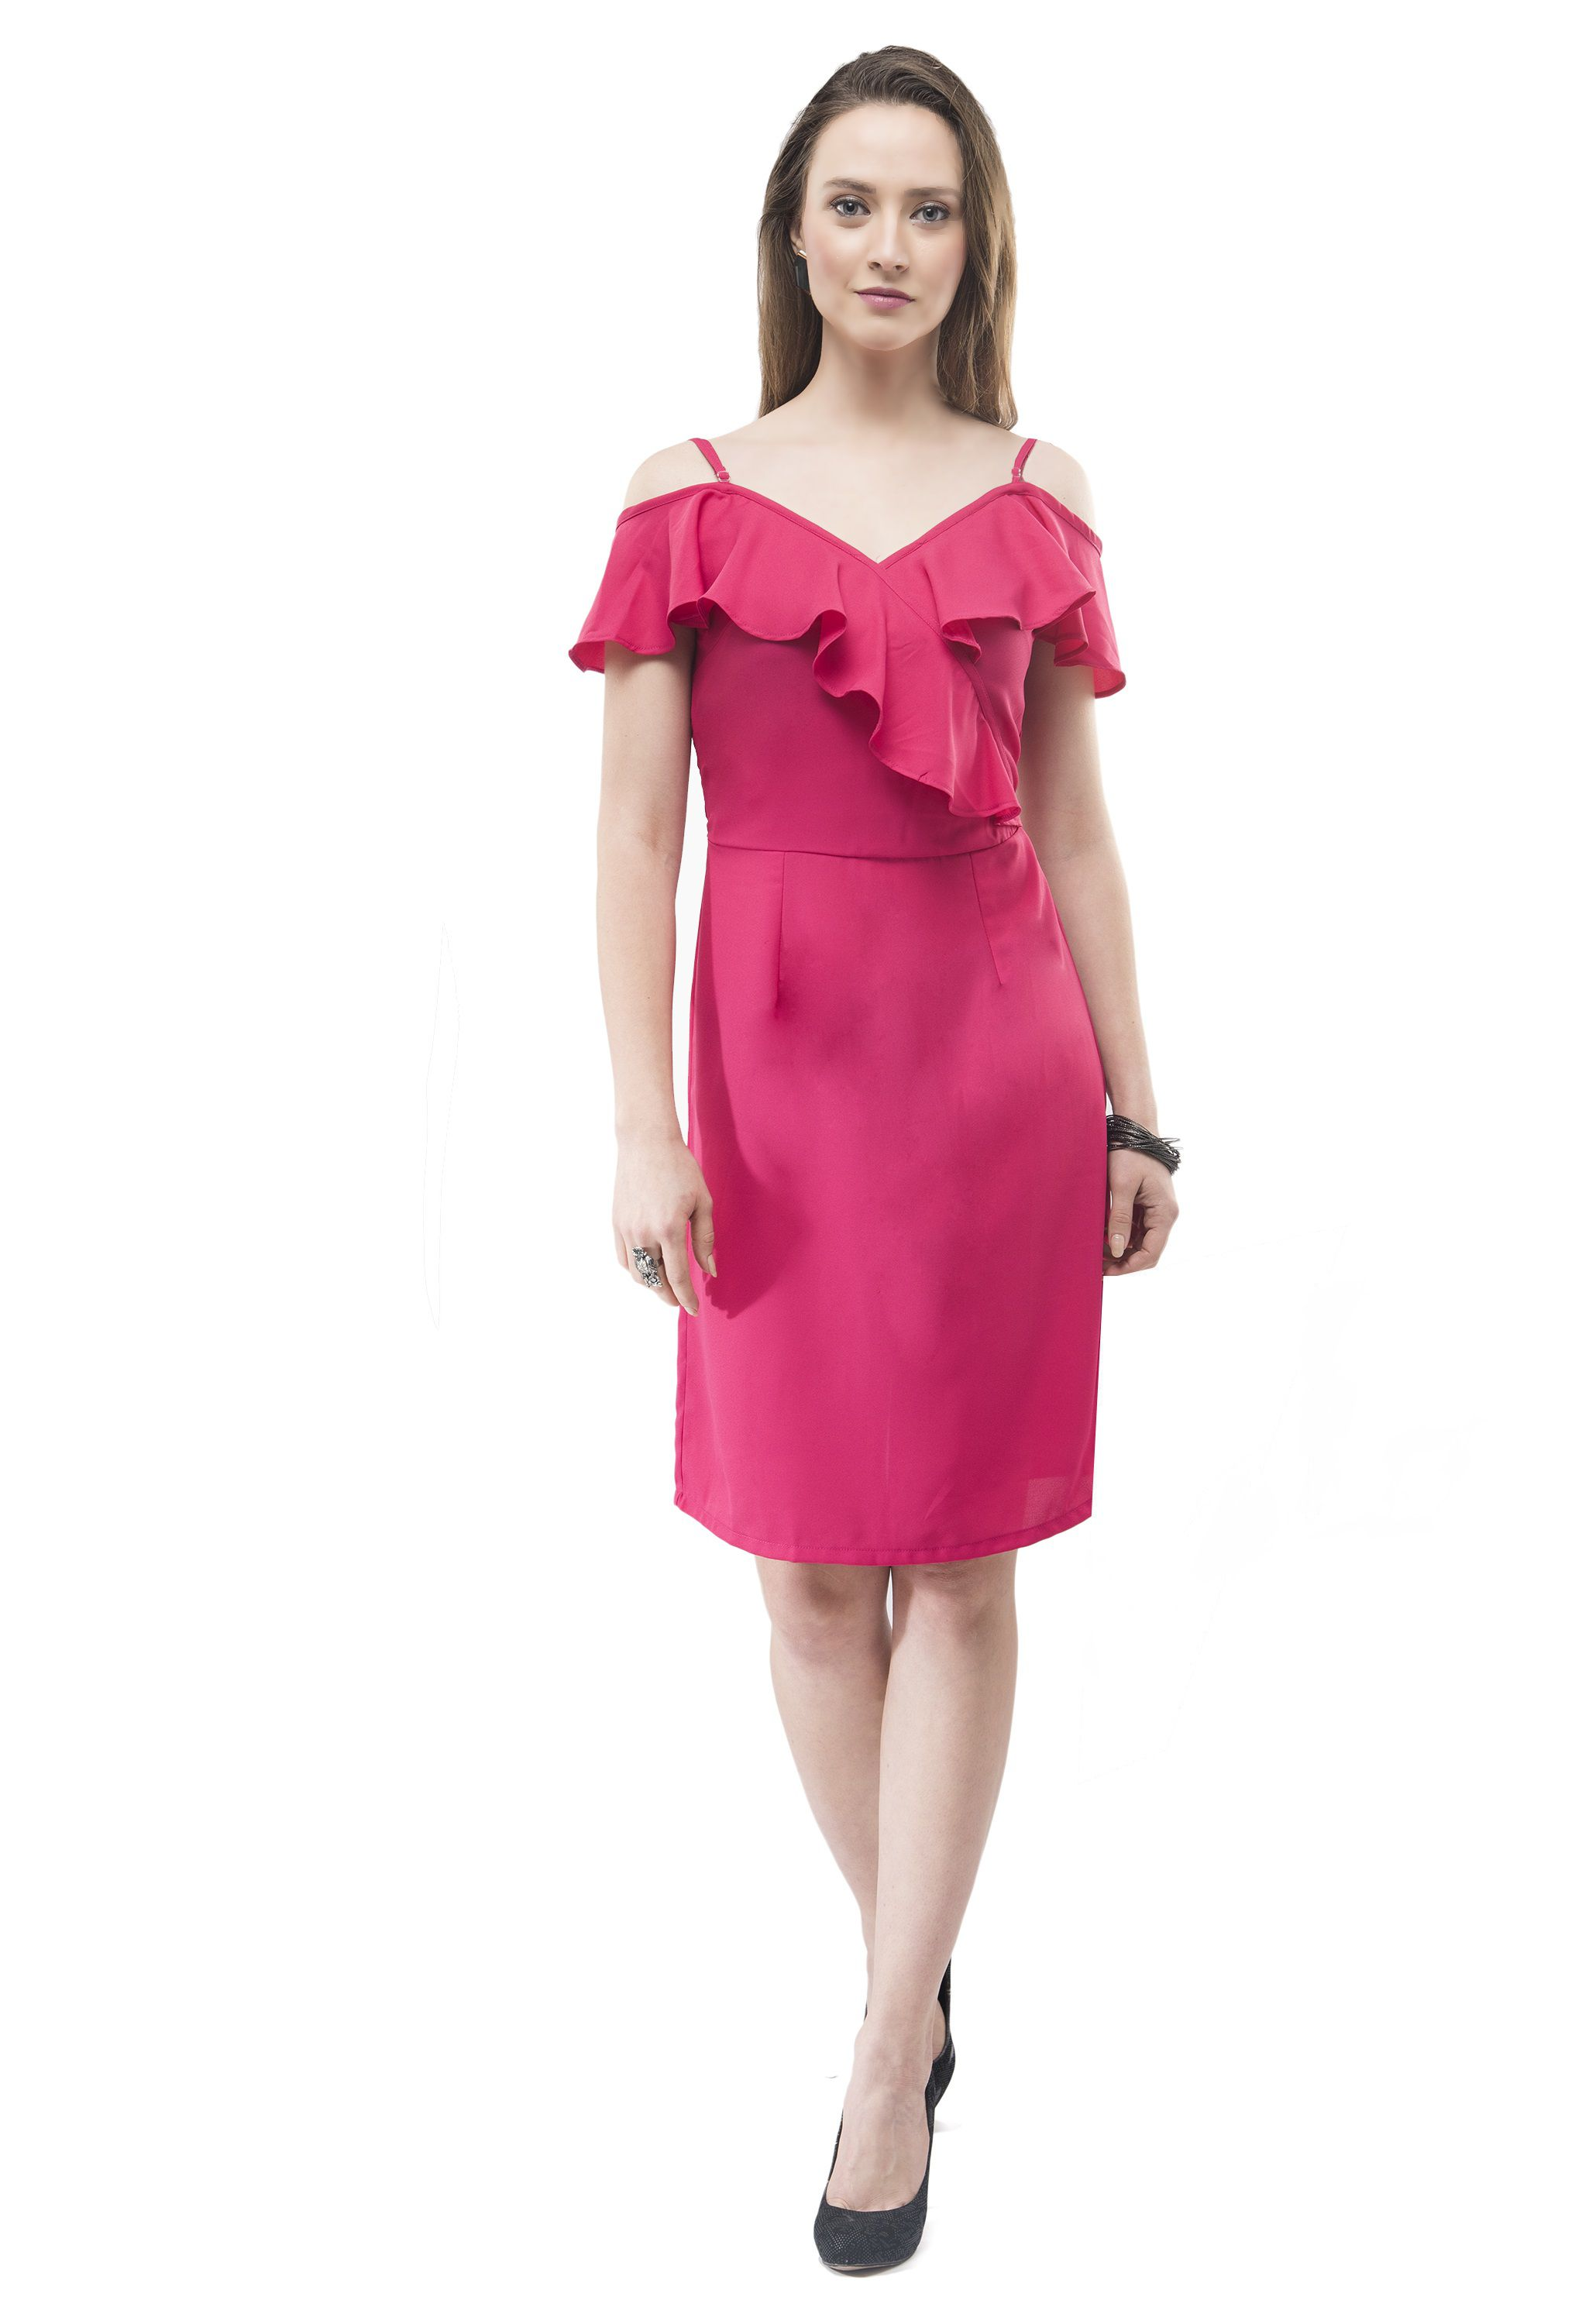 V amp;M Polyester Pink Shift Dress